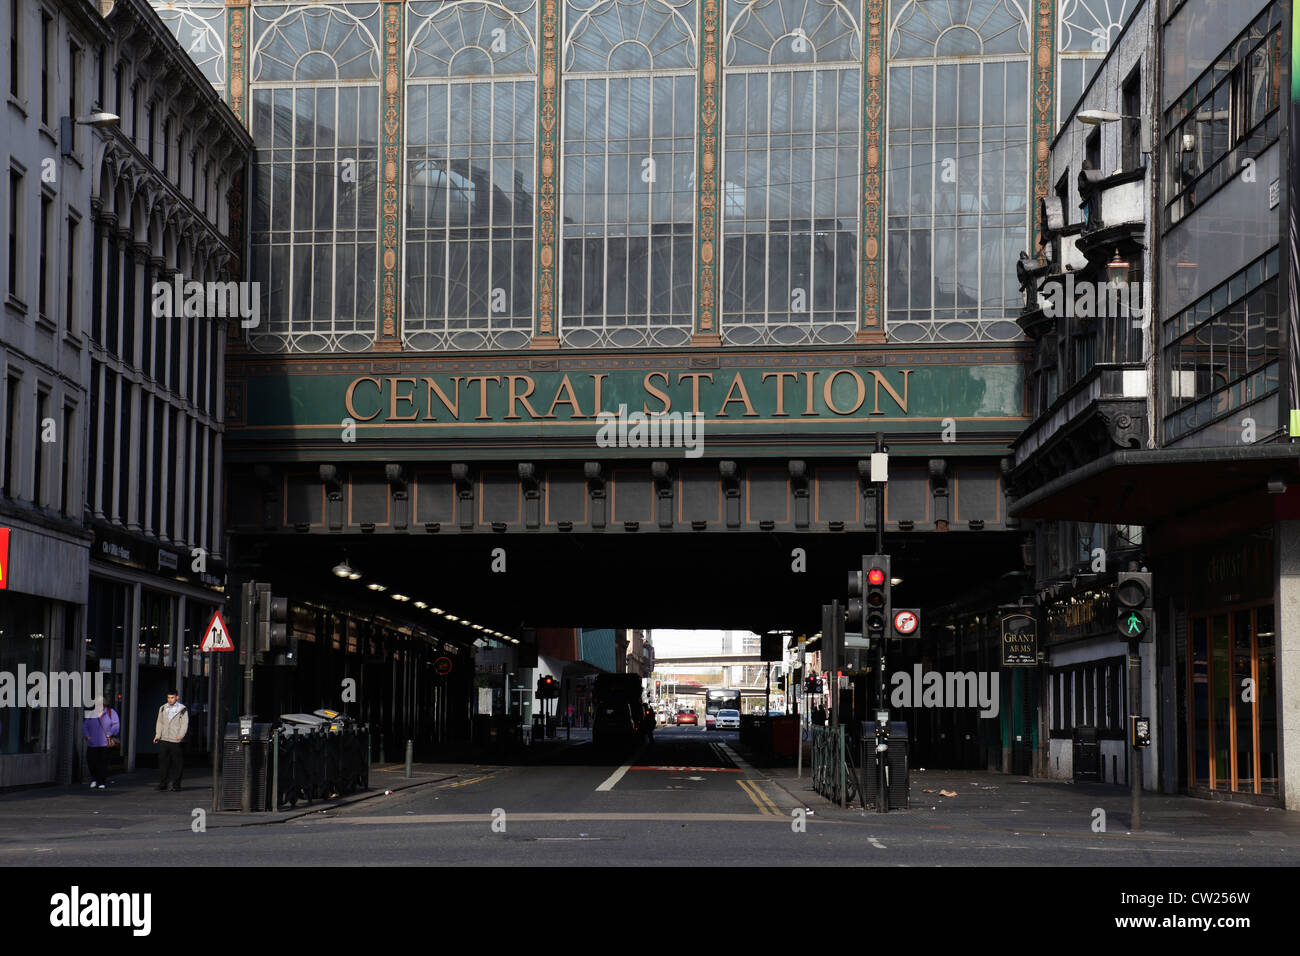 Glasgow Central Station railway bridge over Argyle Street in the city centre, Scotland, UK - Stock Image